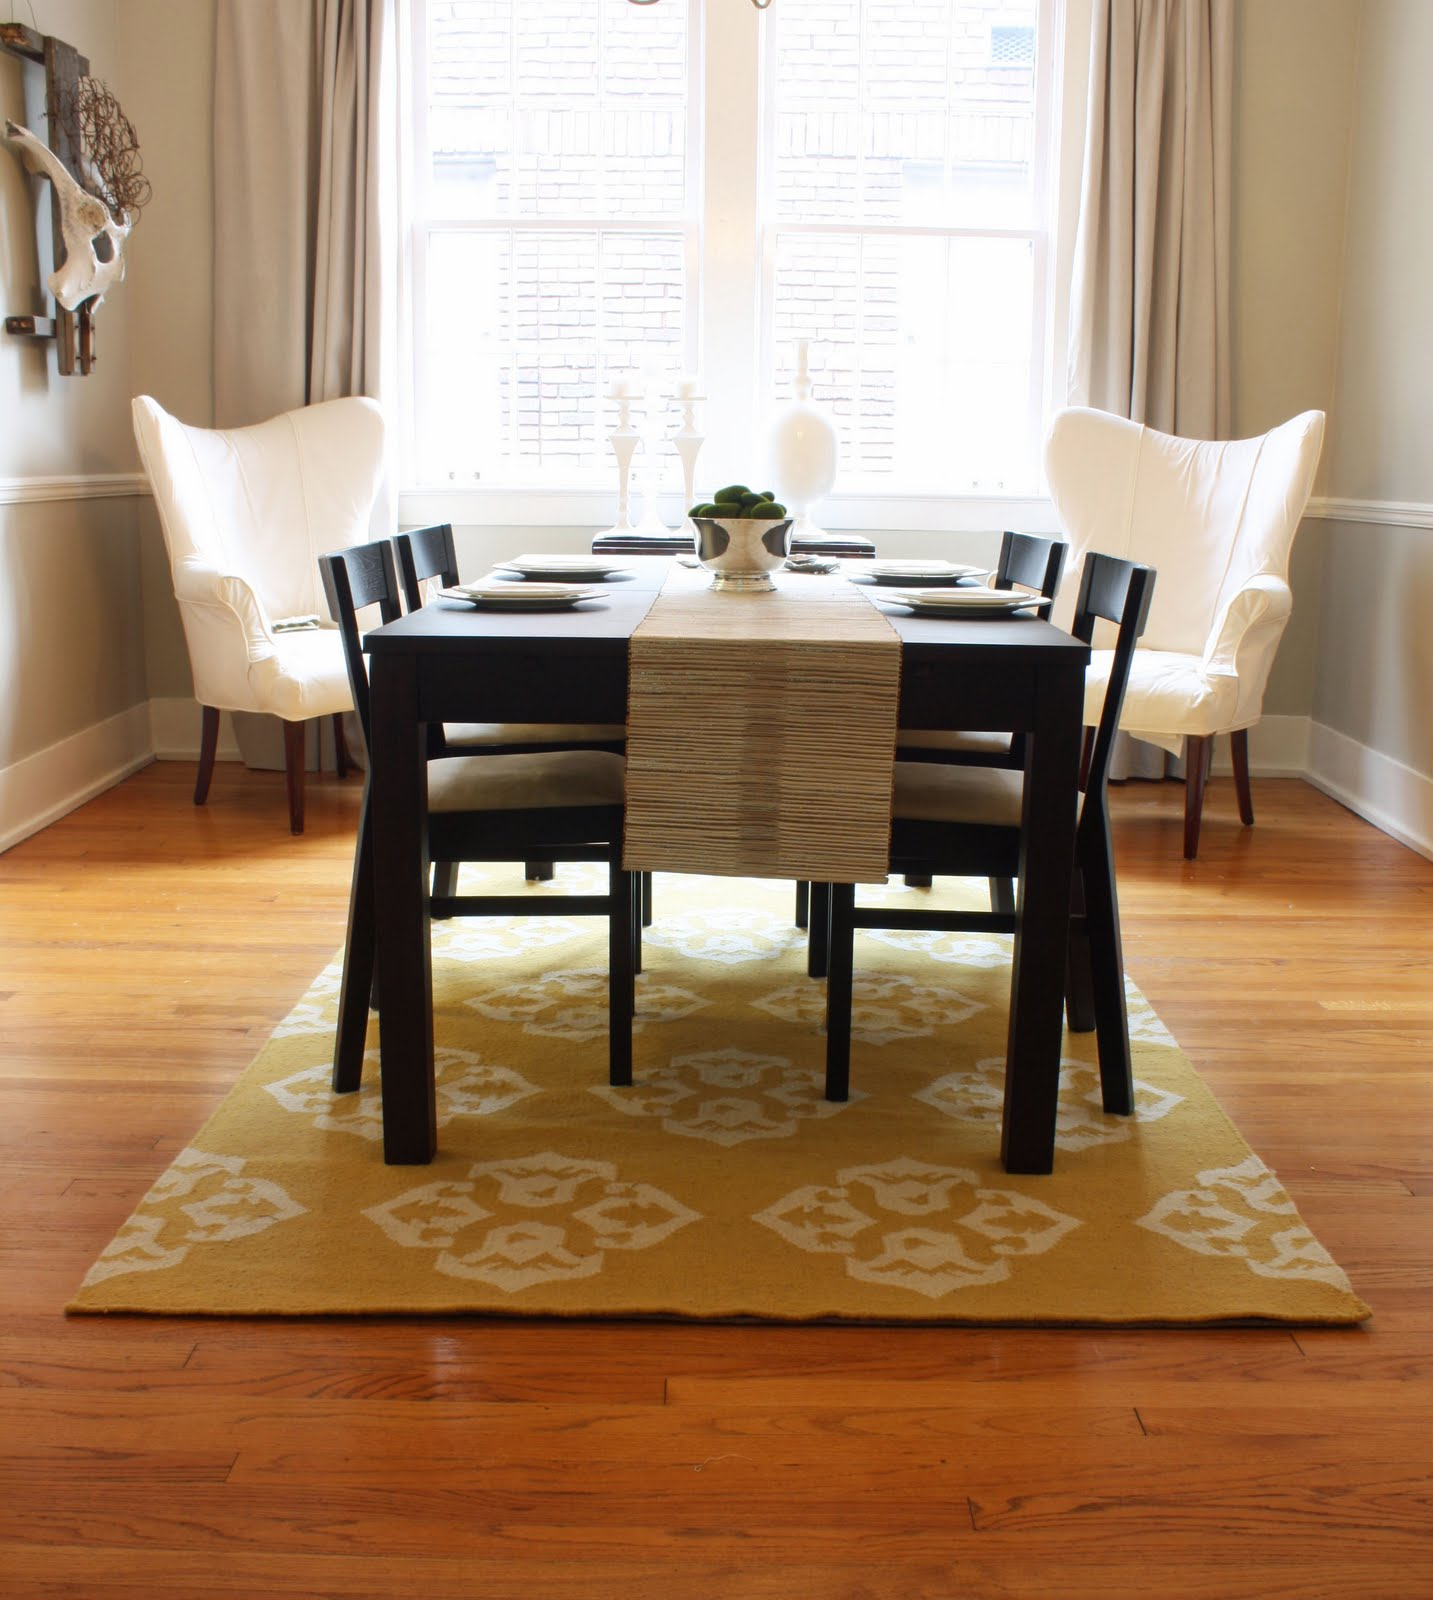 dwell and tell: Dining Room Updates - Curtains & Rug!